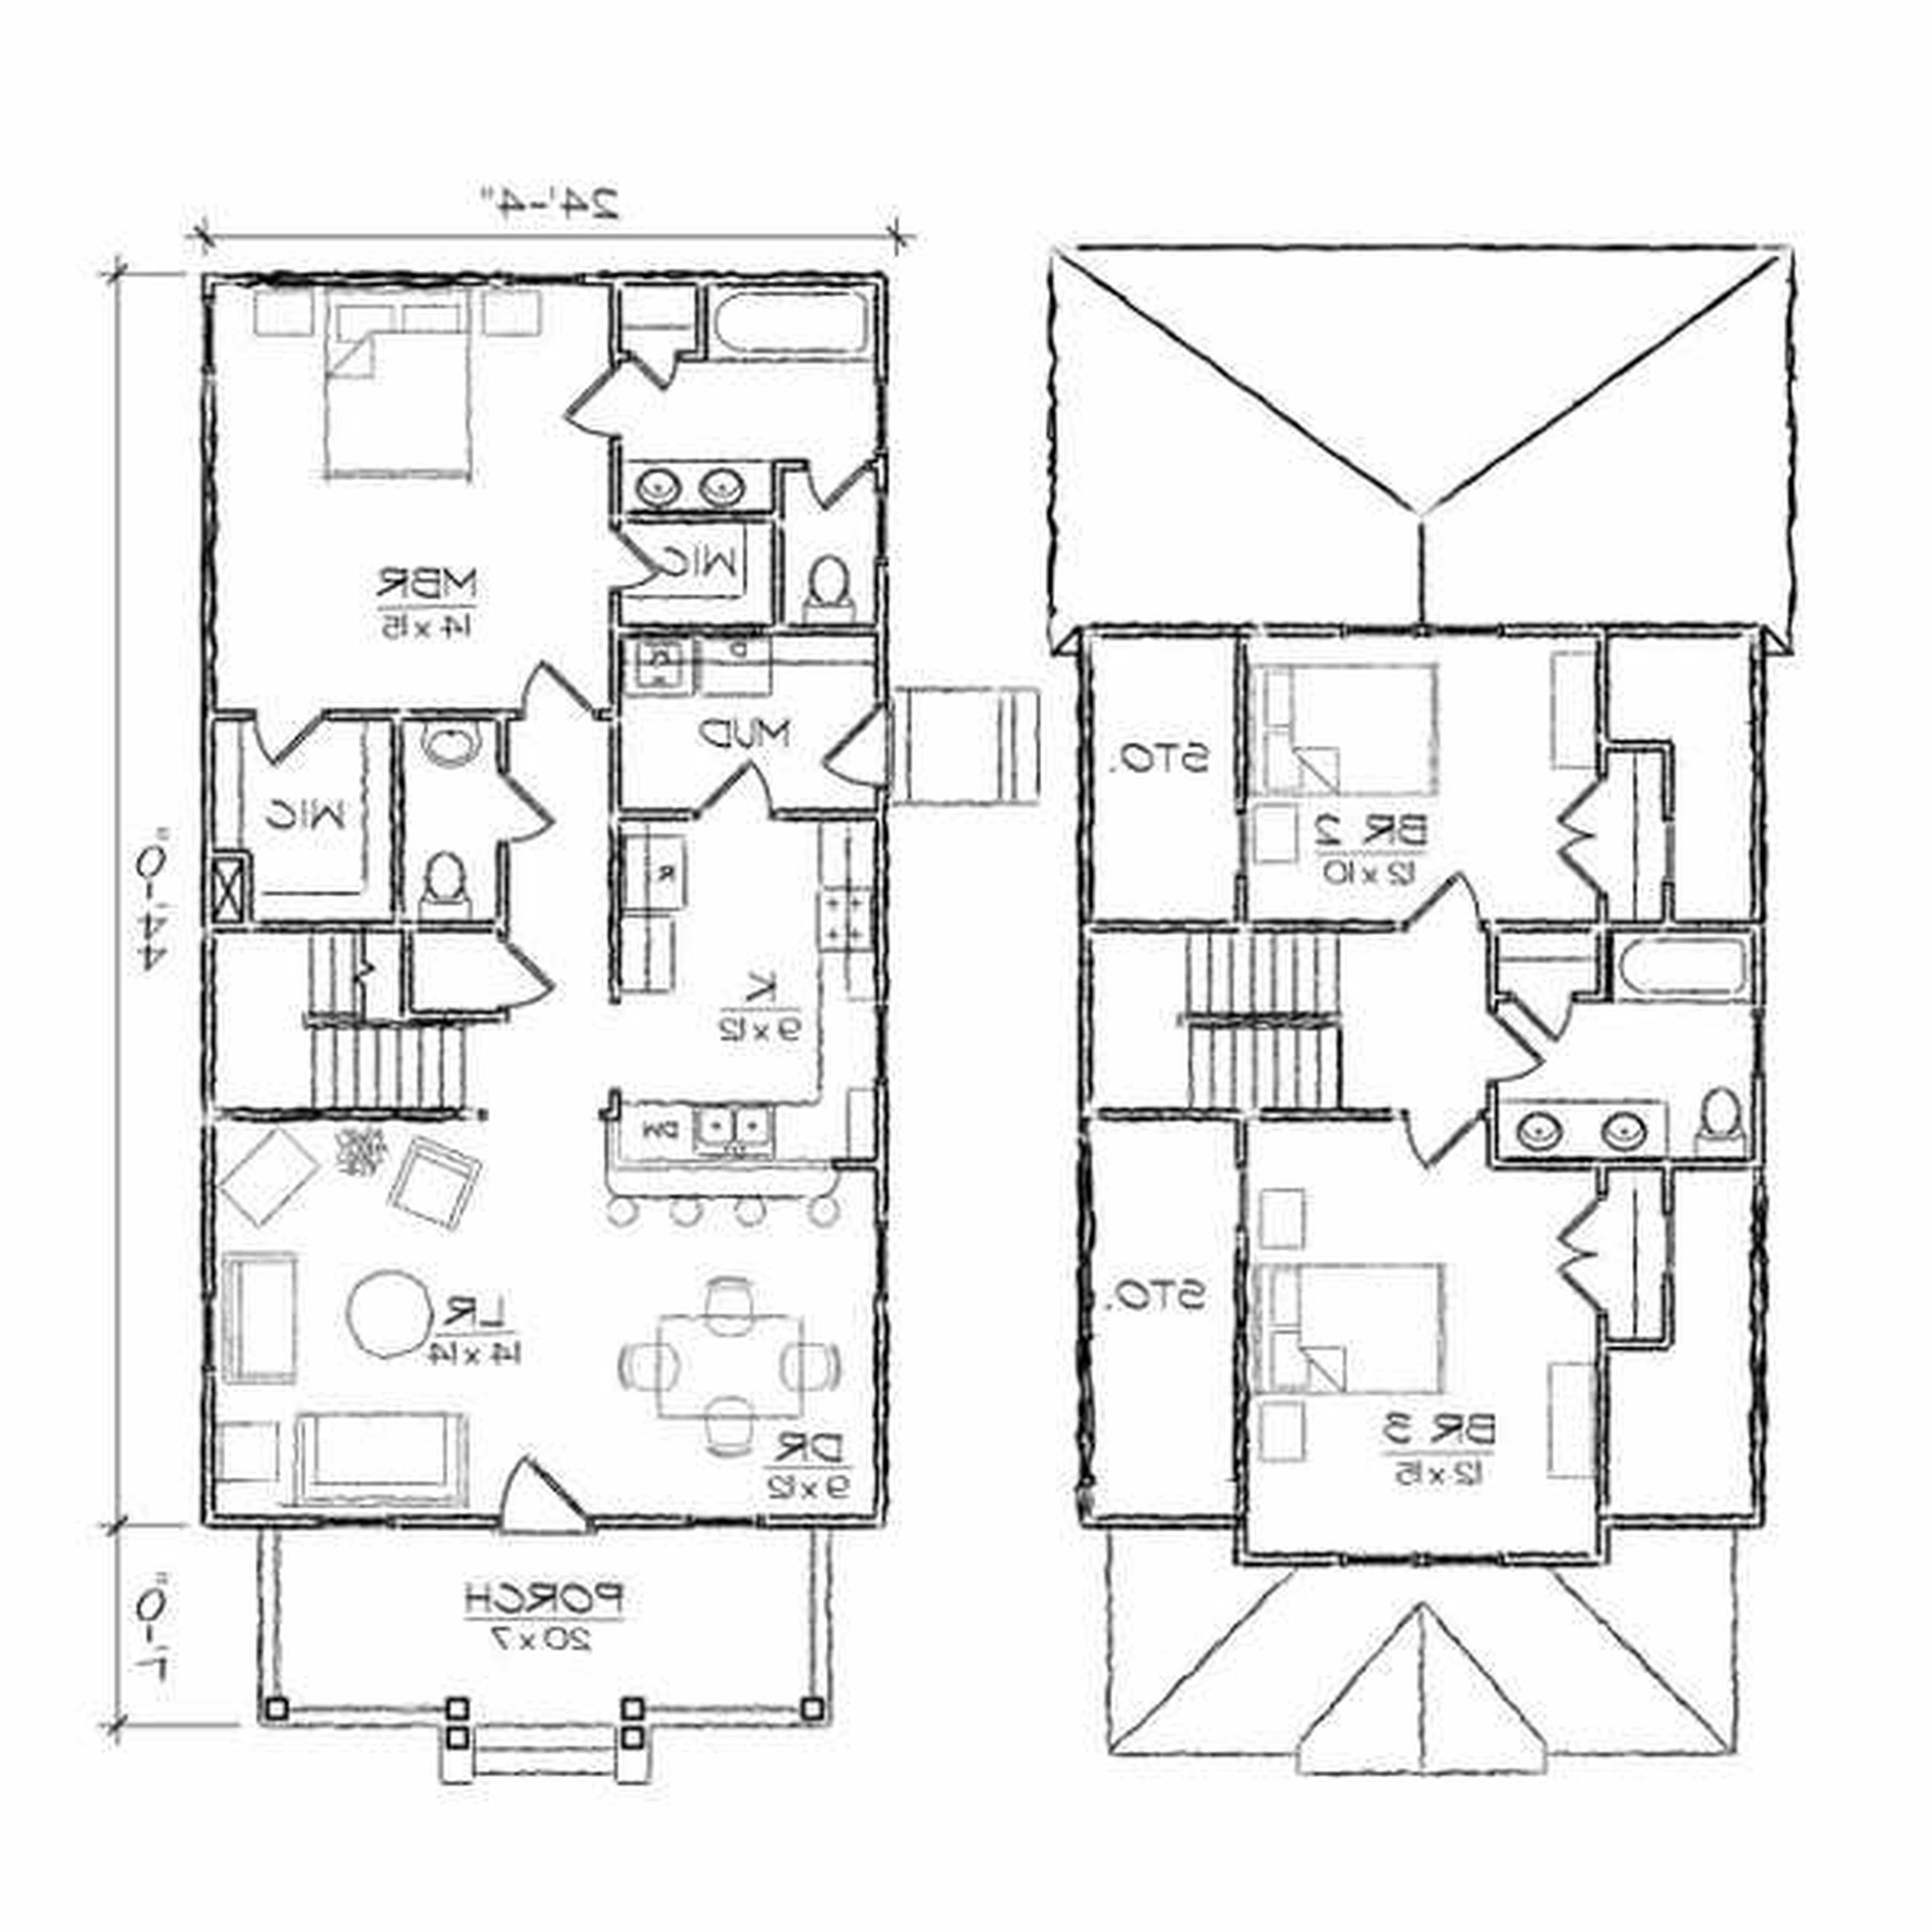 5000x5000 Drawn House Architectural Drawing